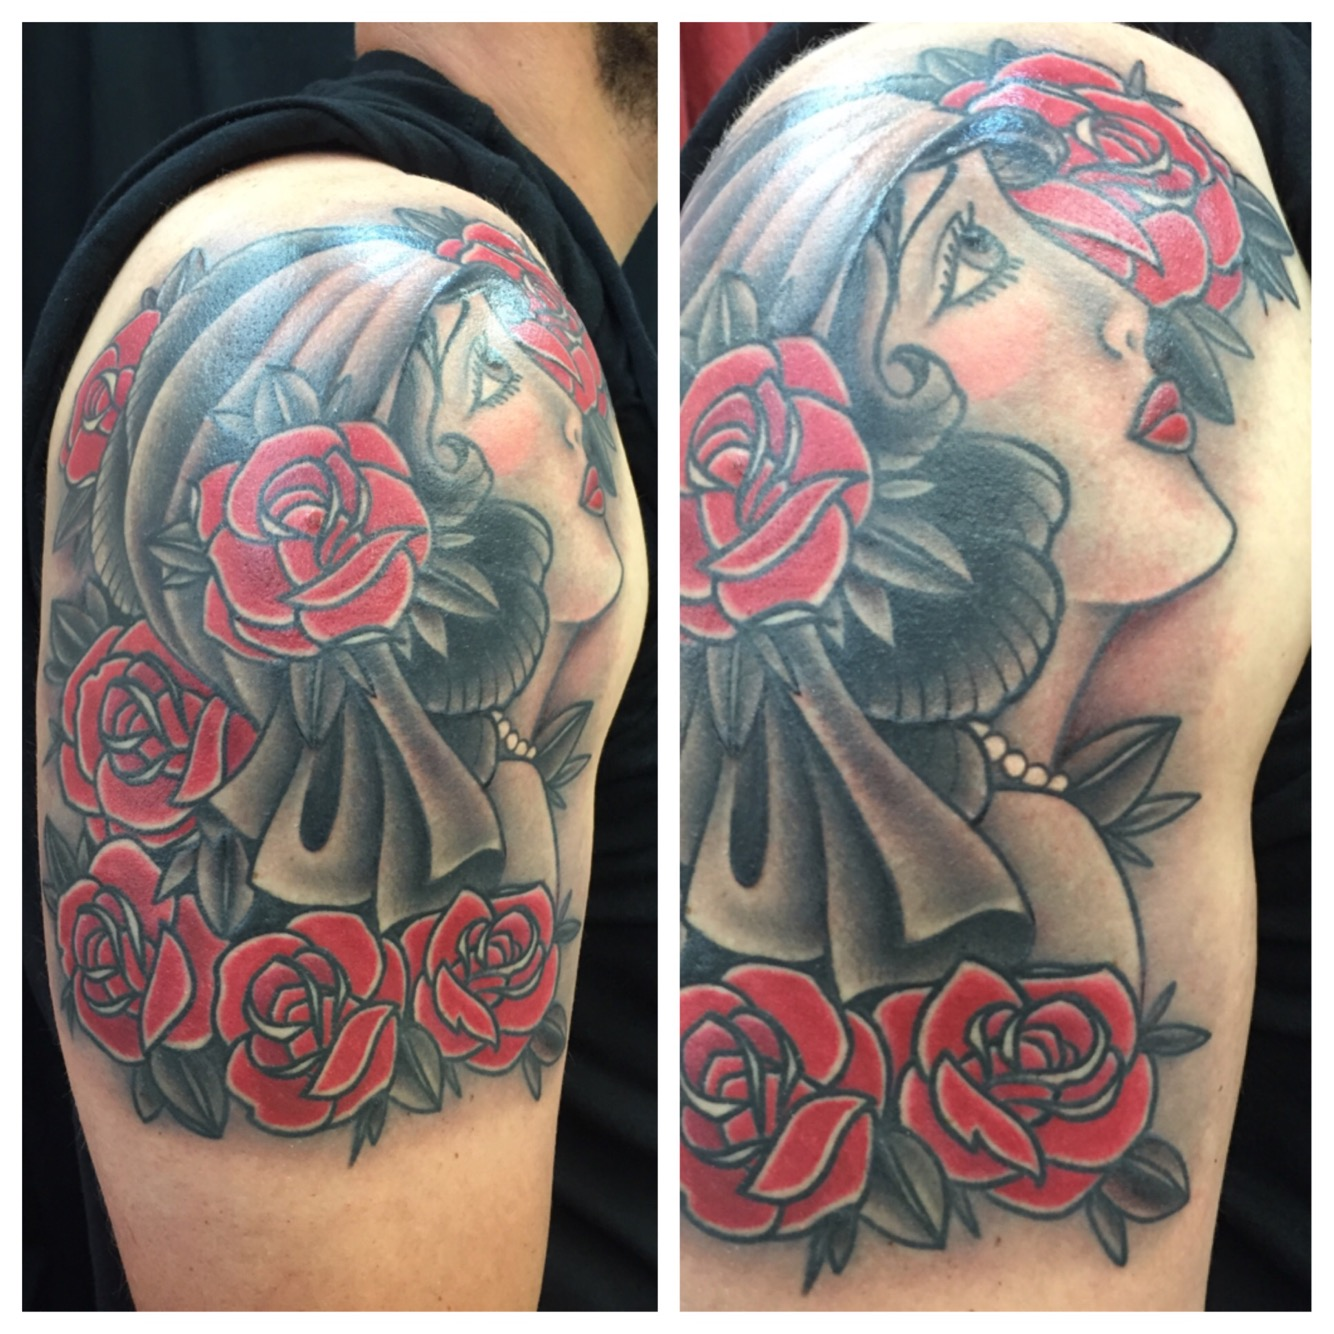 5a613574f American traditional tattoo black and grey and color gypsy girl head with  roses